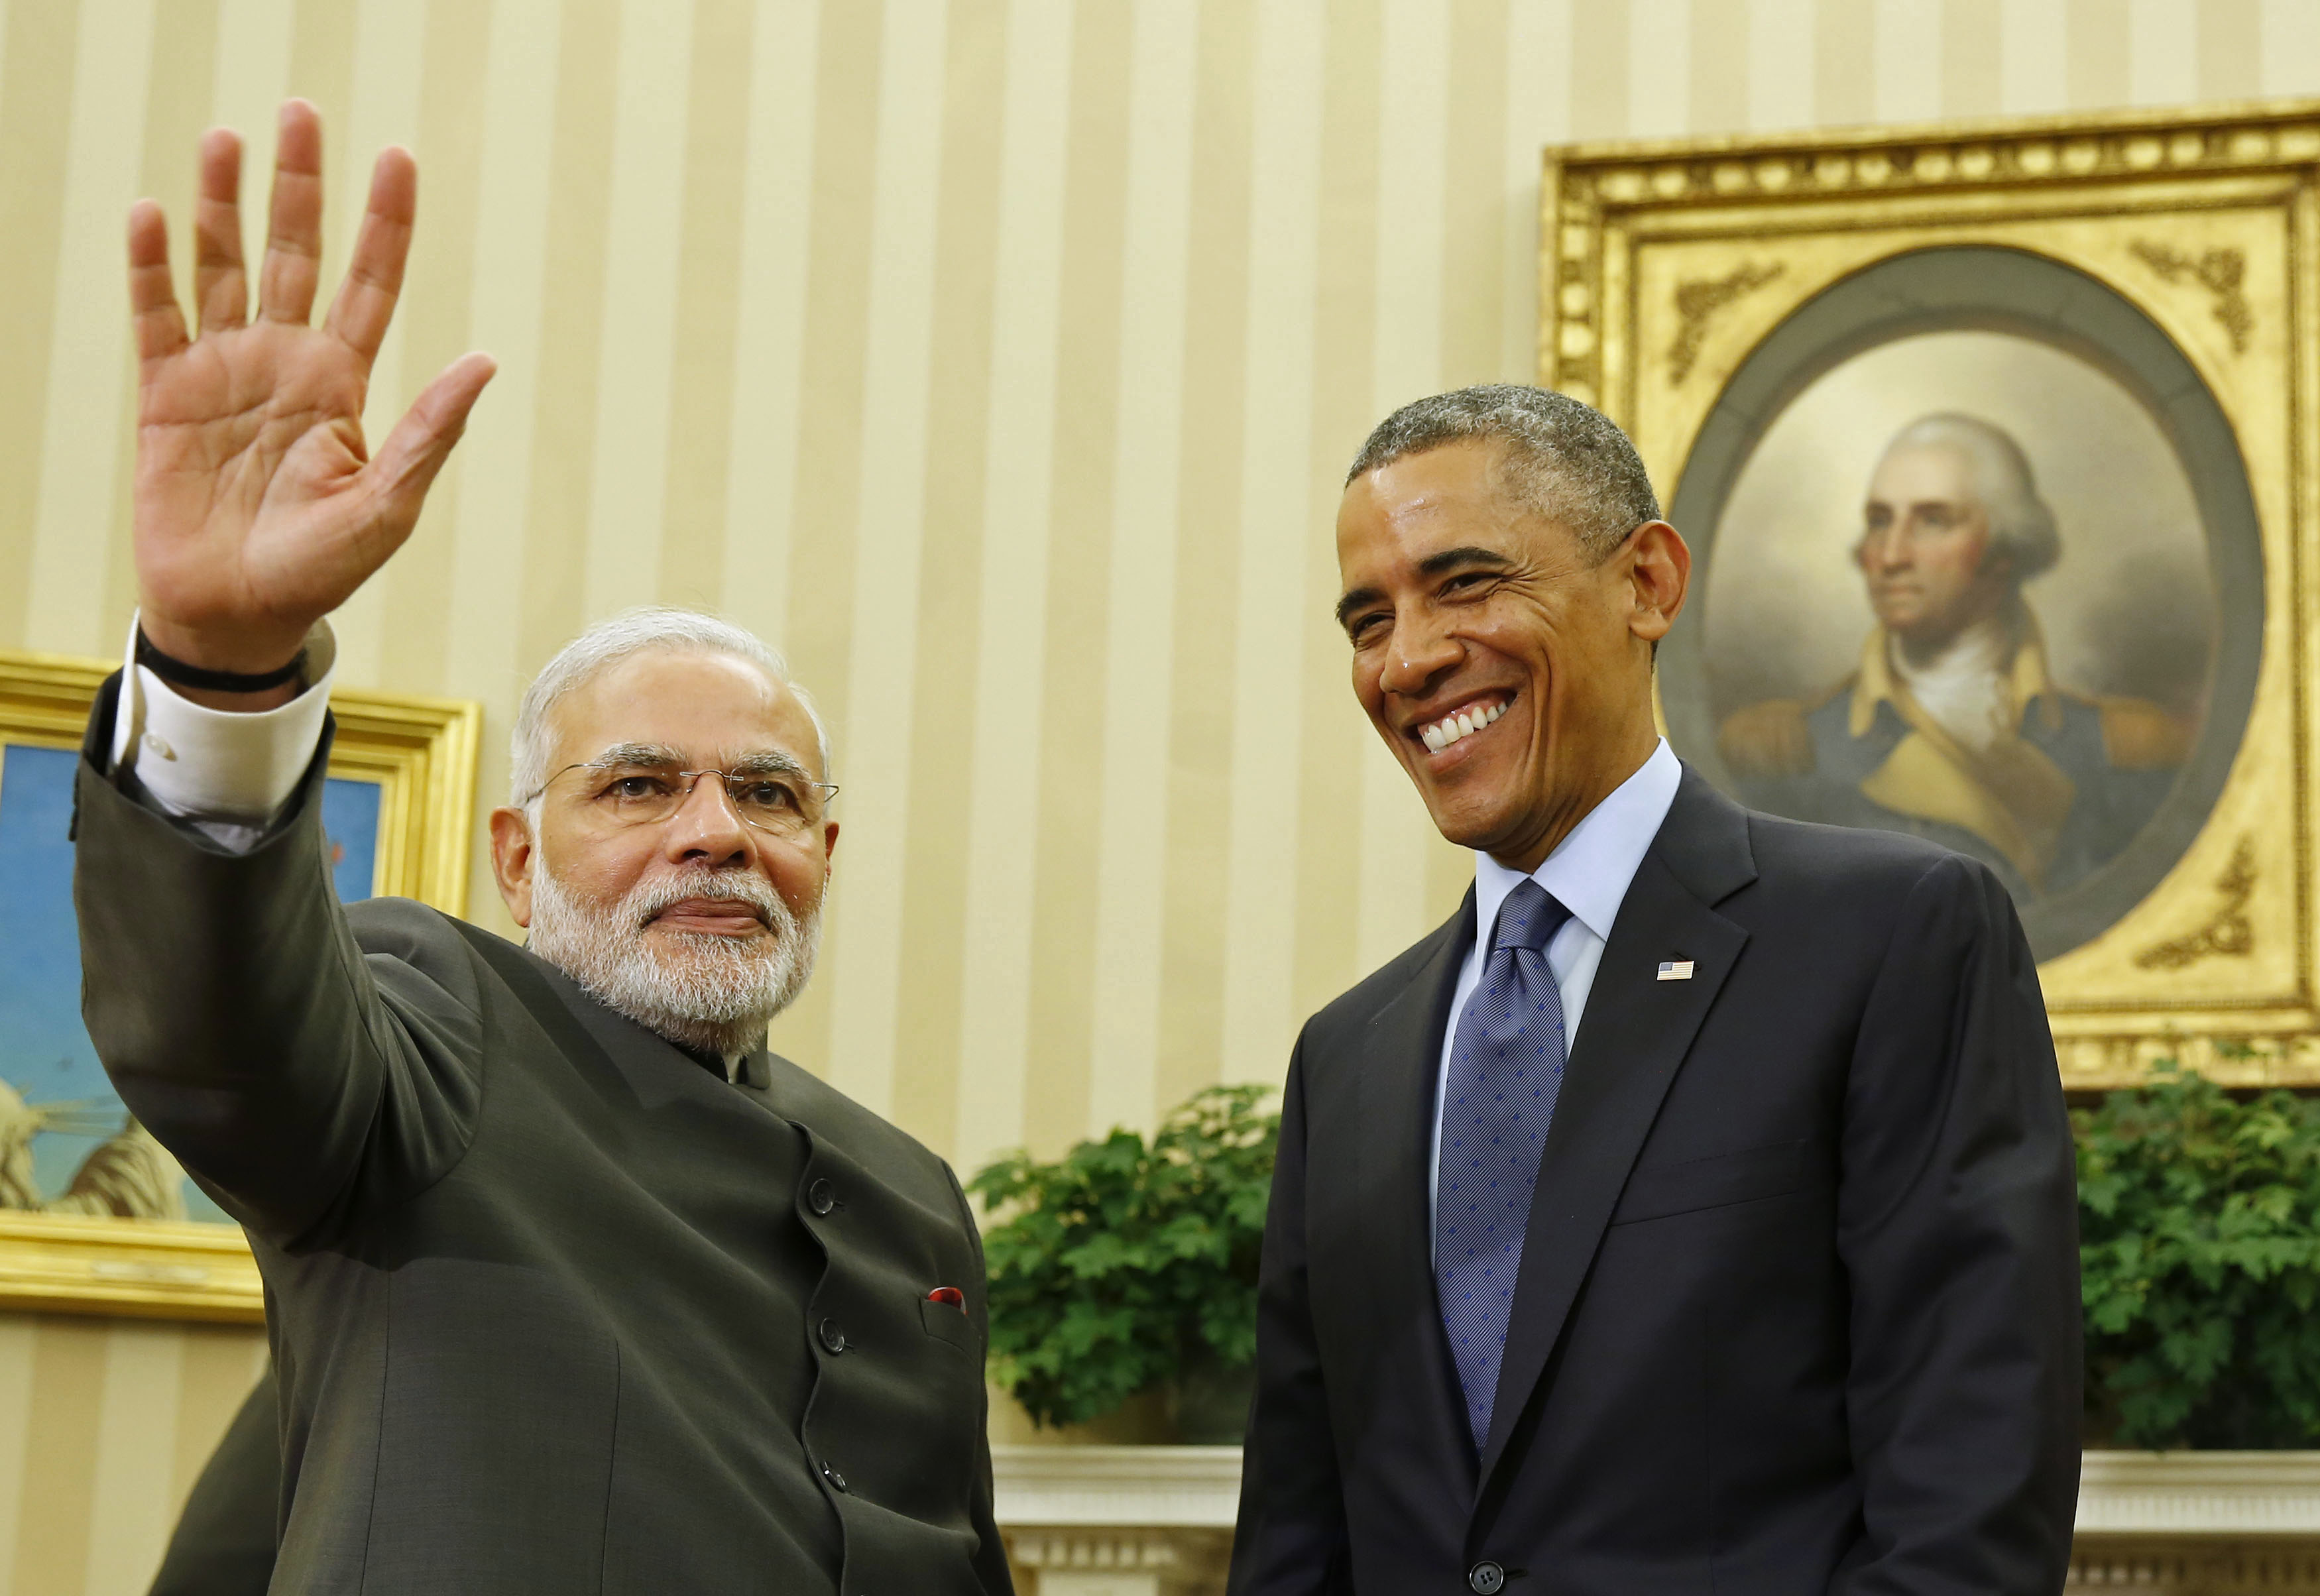 U.S. President Barack Obama smiles as he hosts a meeting with India's Prime Minister Narendra Modi in the Oval Office of the White House in Washington September 30, 2014.